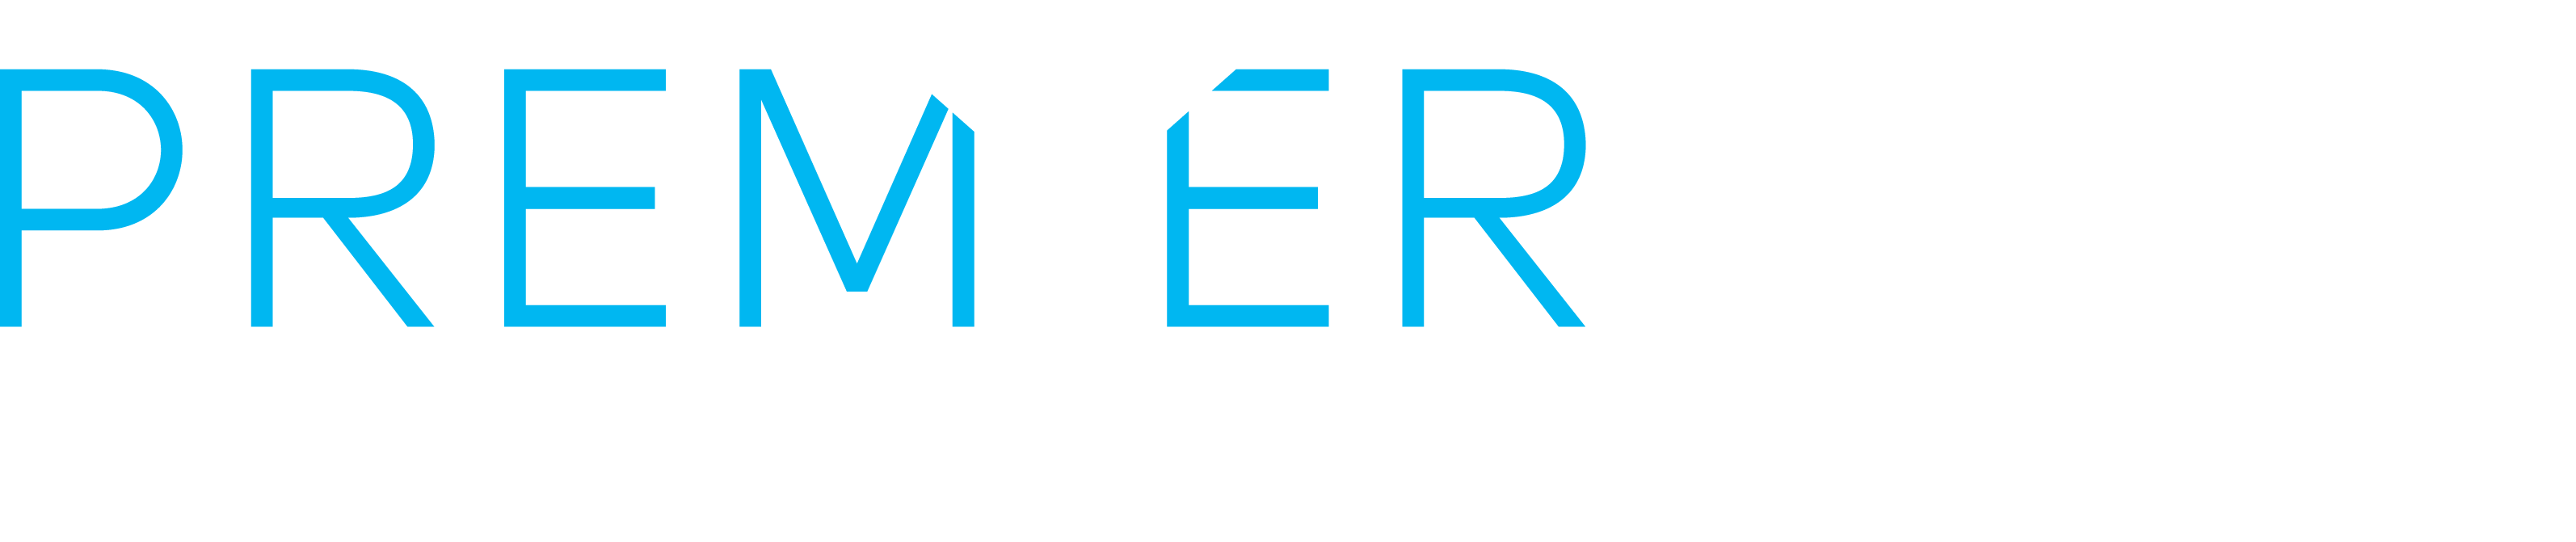 Premier Pour Bartending logo, light blue 'Premier' with white martini glass and white 'Pour'